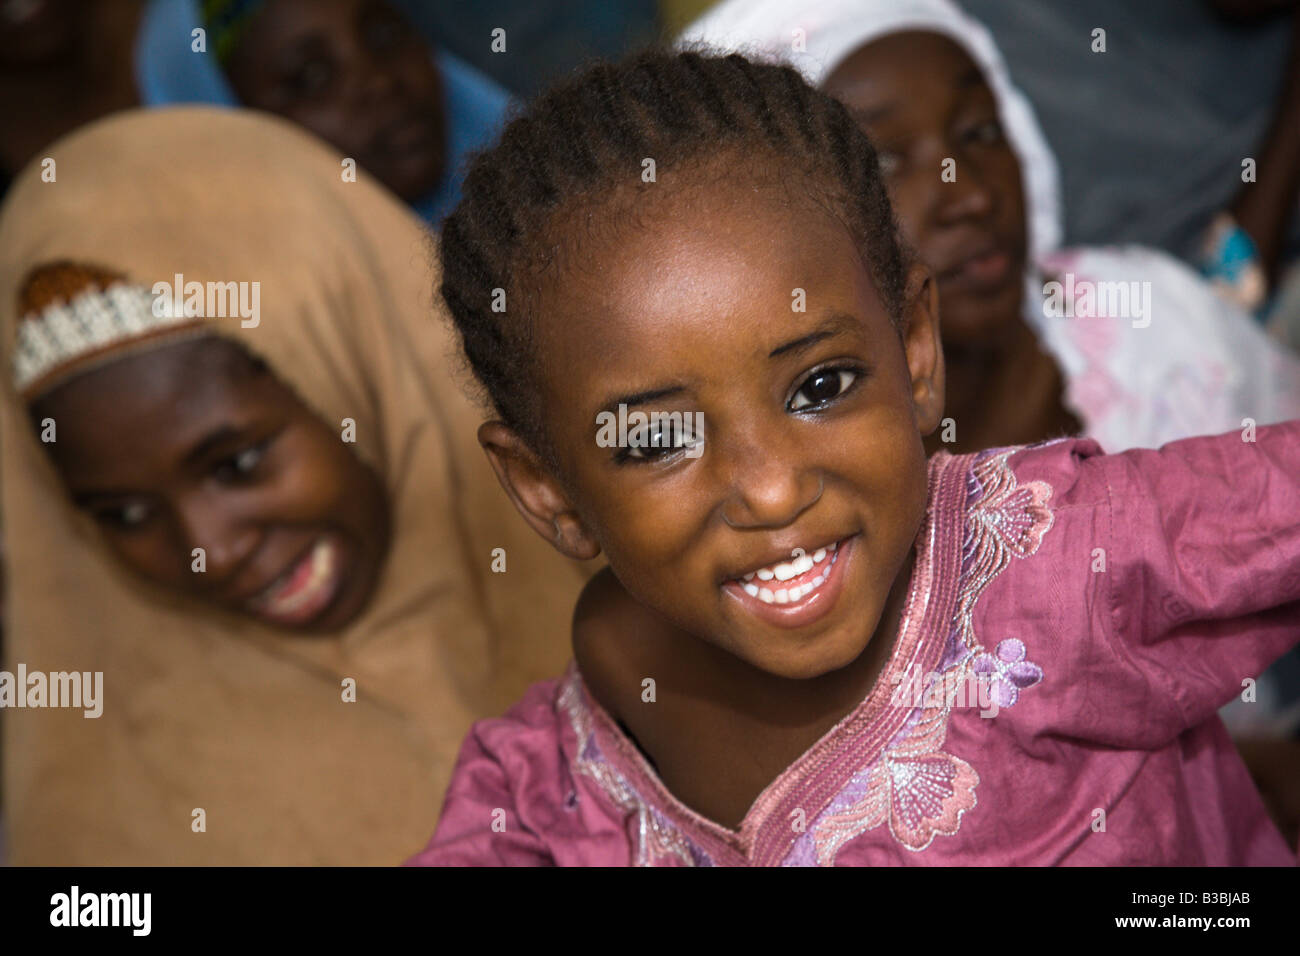 Child in the Tudun Murtala area of Kano Nigeria - Stock Image